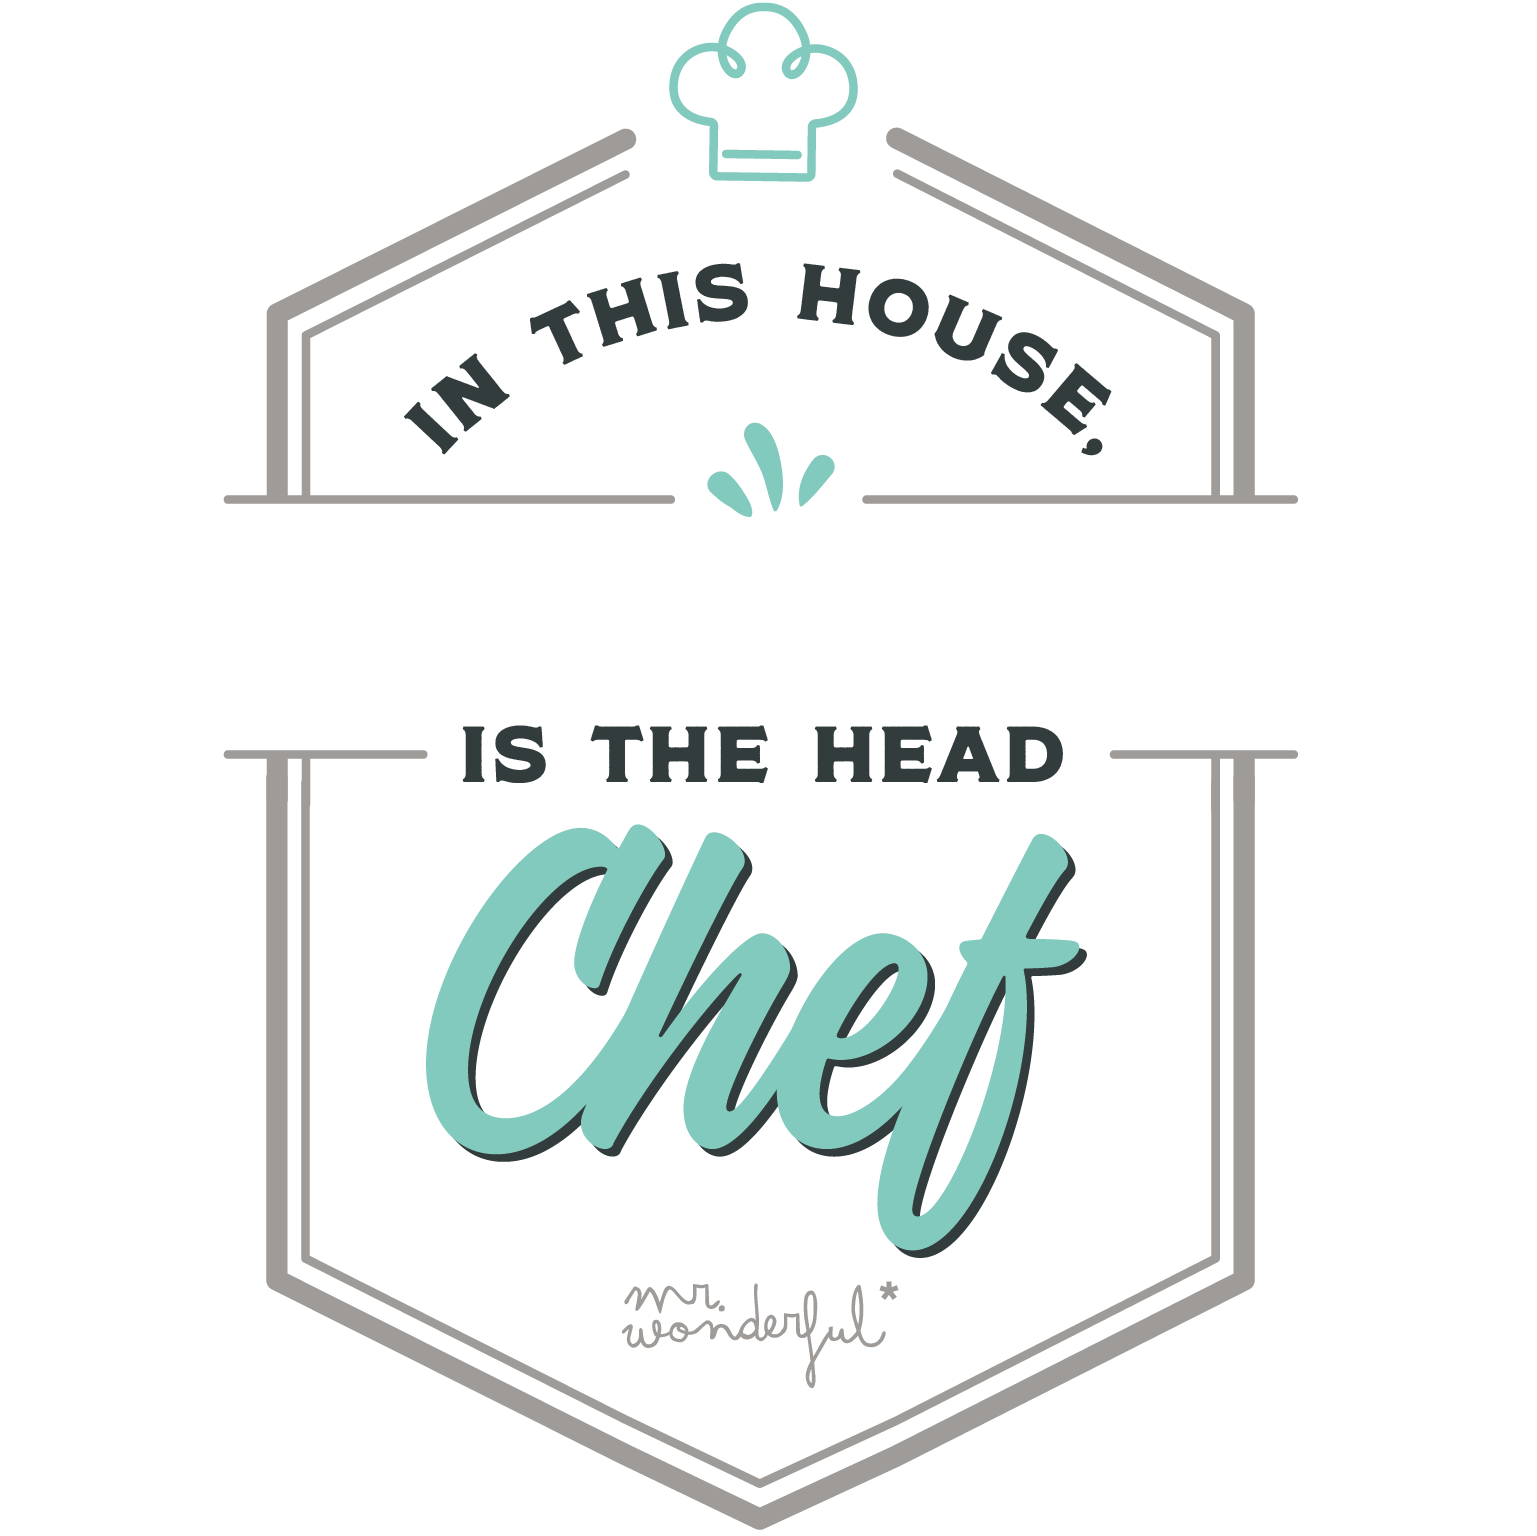 Is the head chef